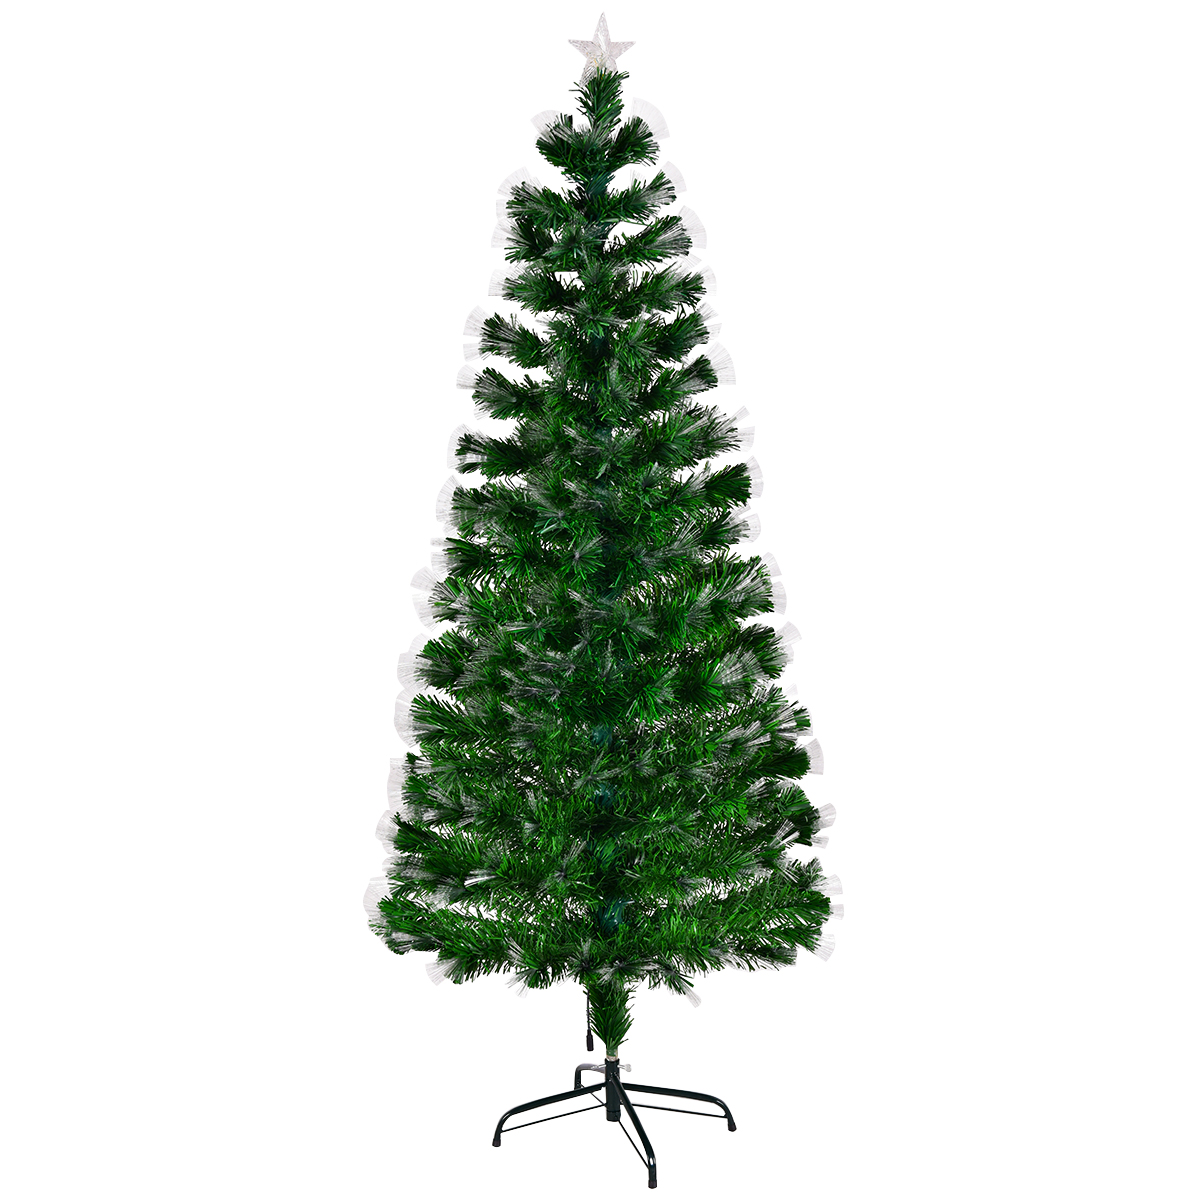 6ft Fibre Optic Christmas Tree with Top Star